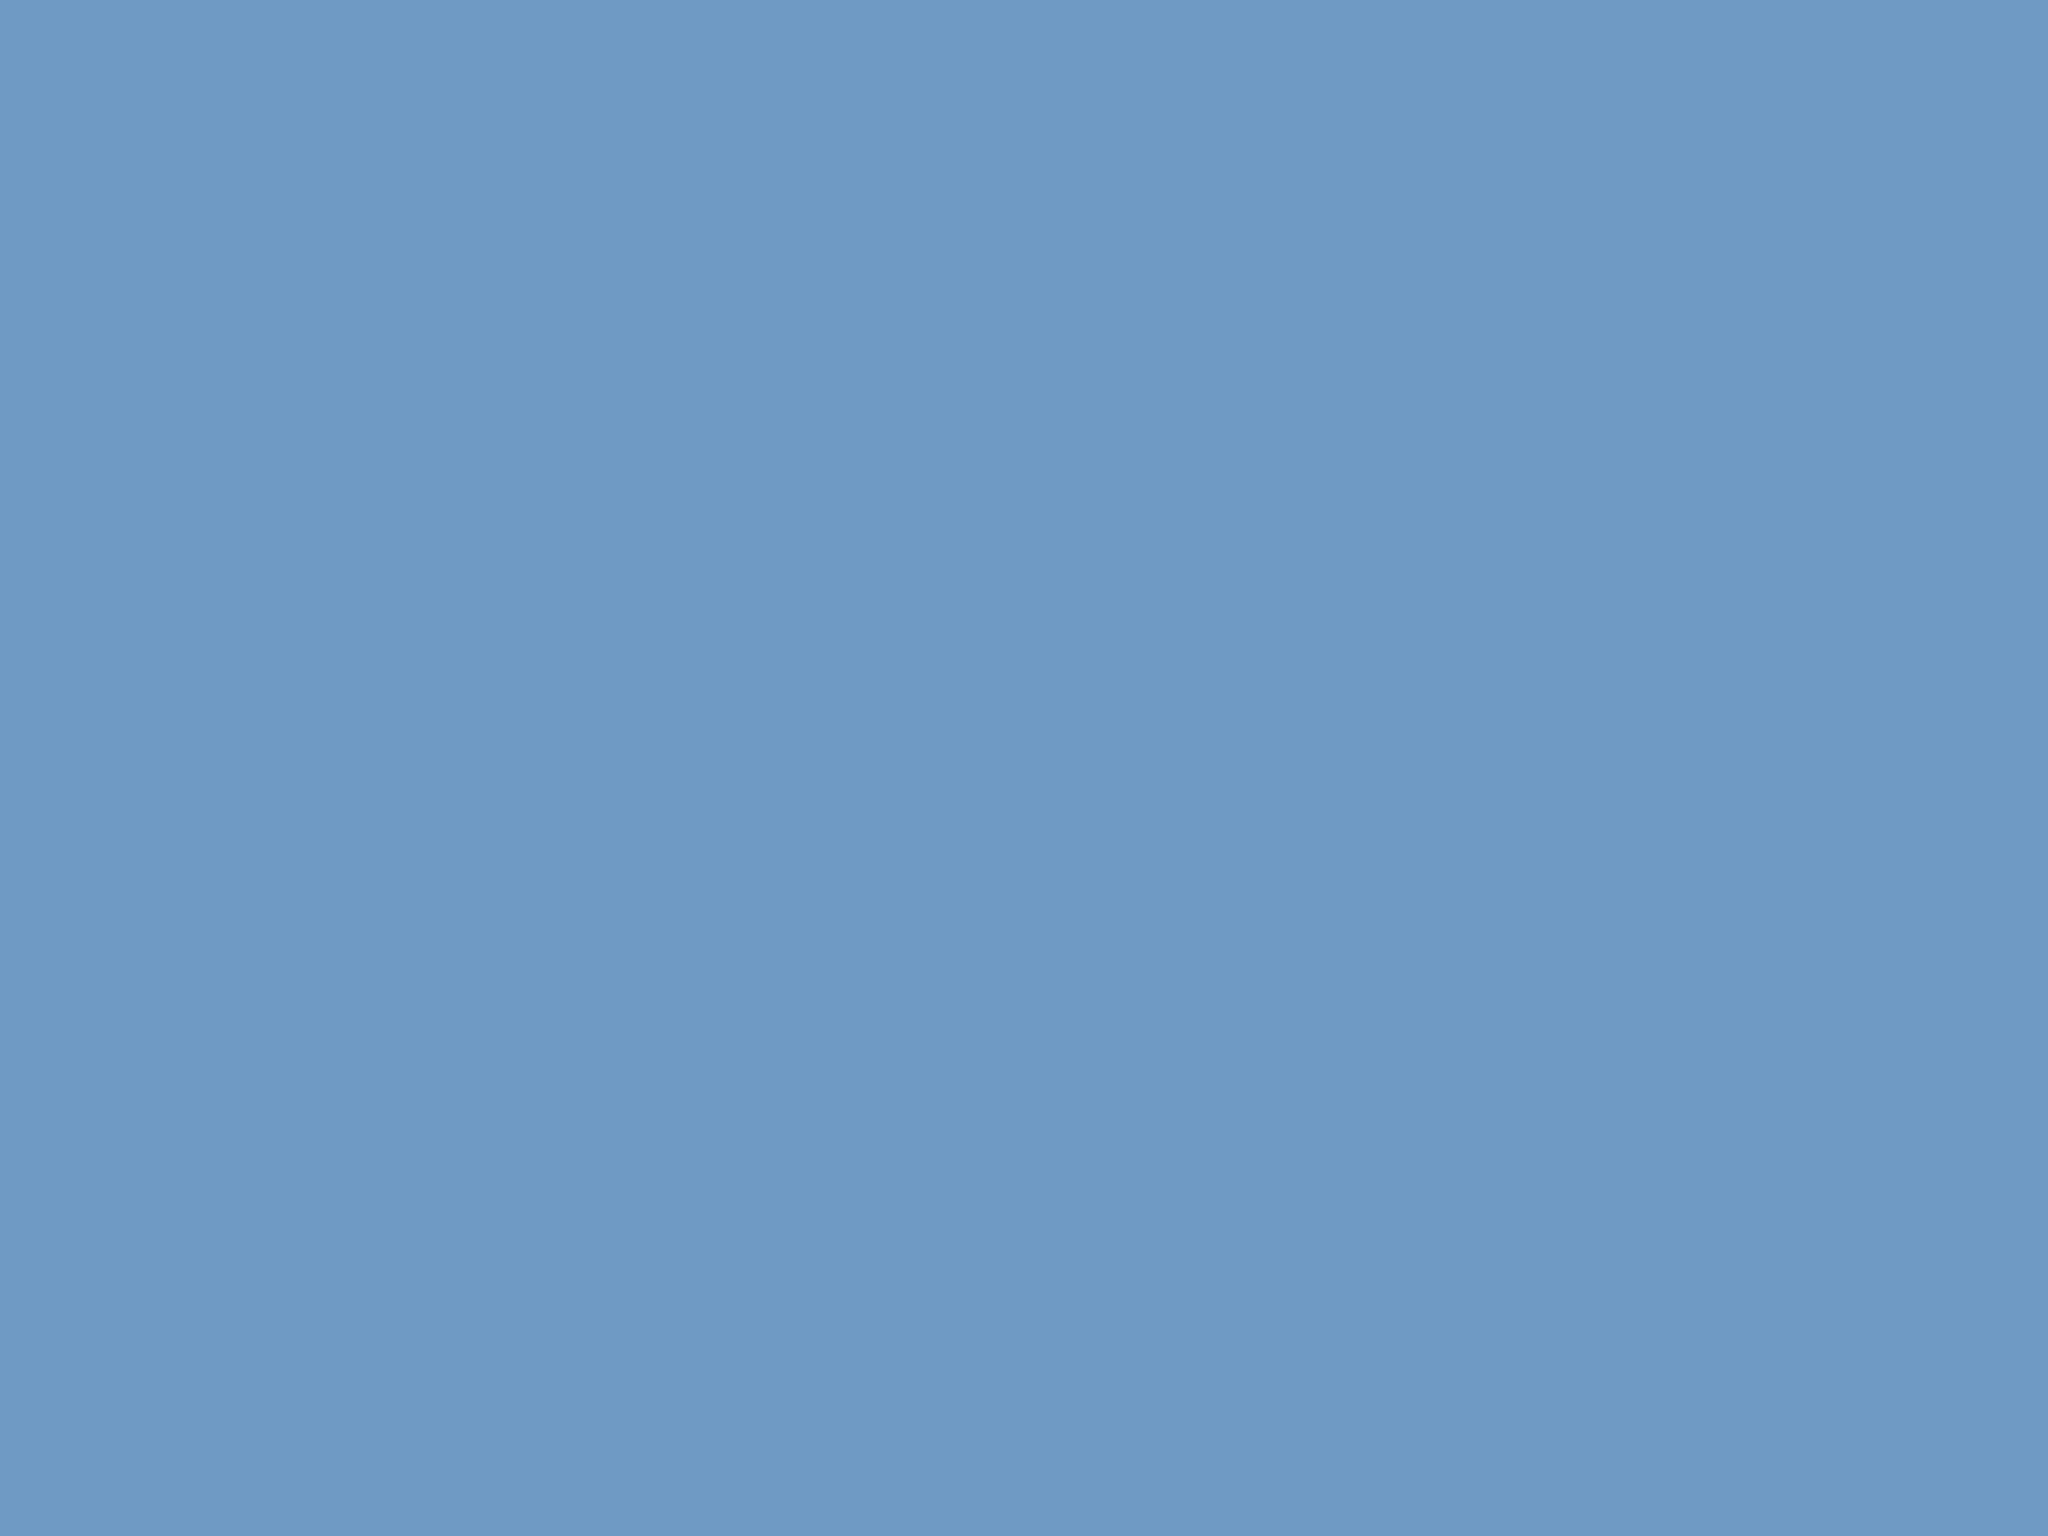 2048x1536 Cerulean Frost Solid Color Background